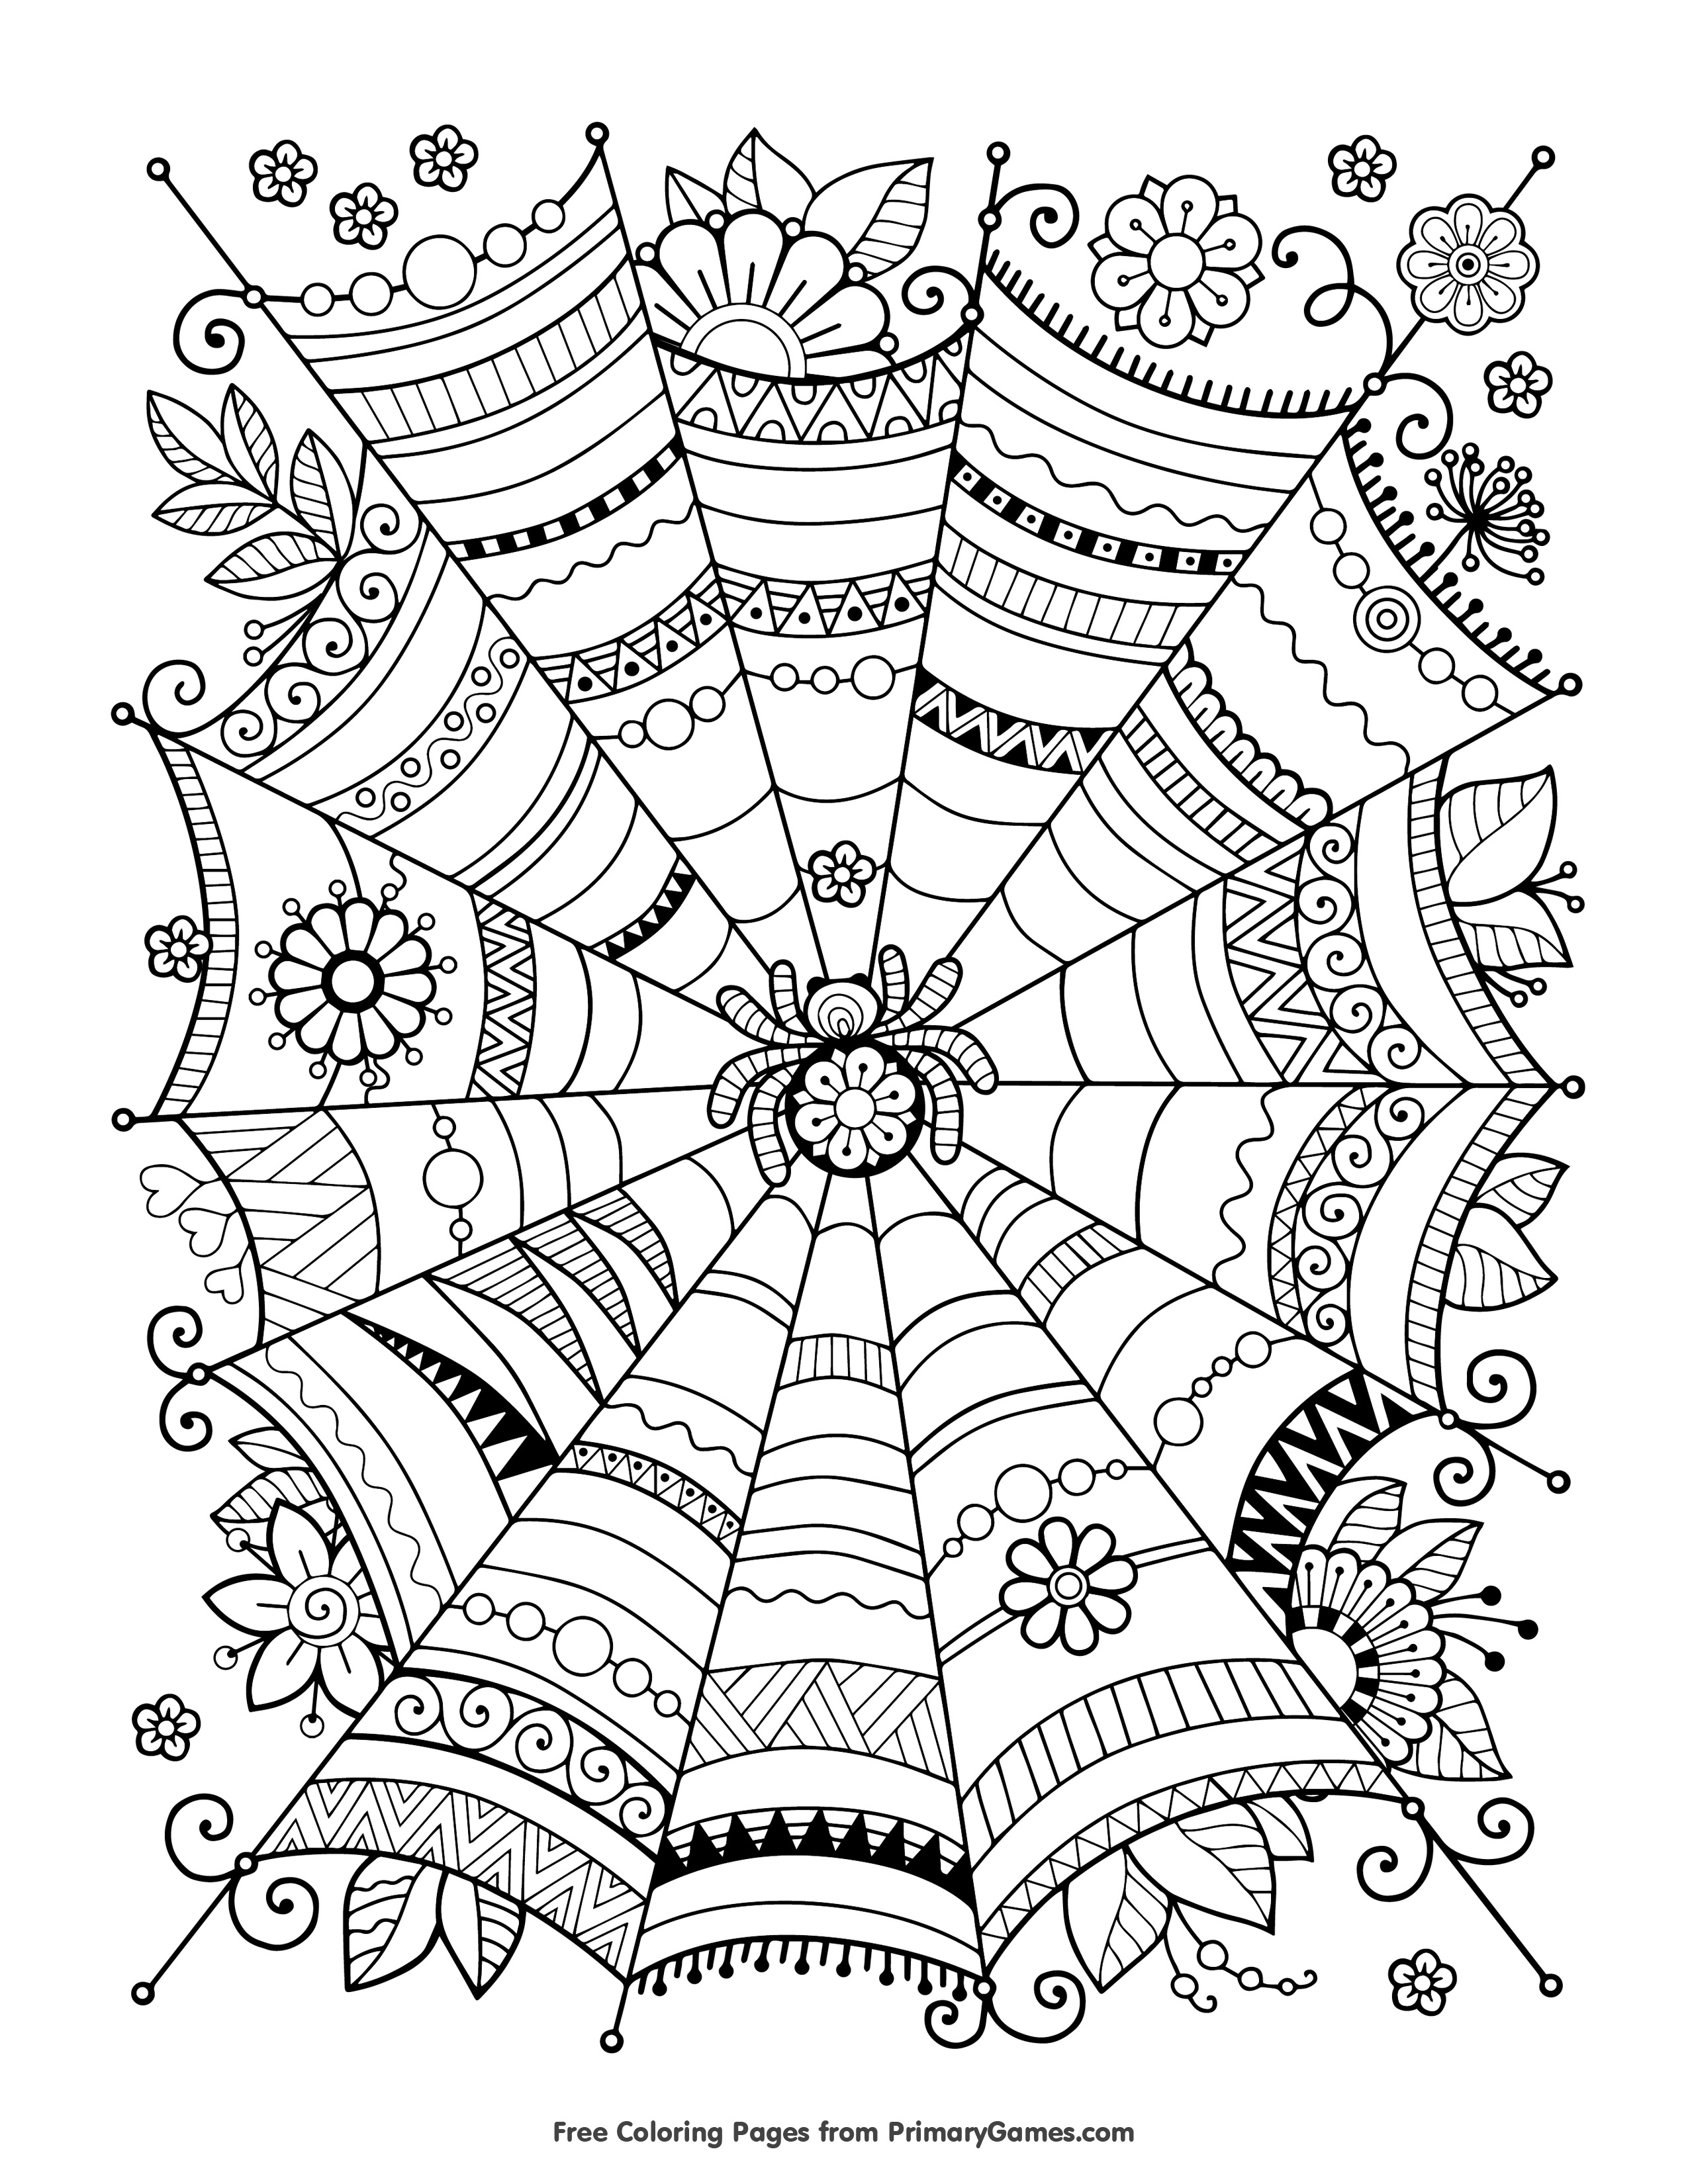 Coloring Ideas : Freeloween Coloring Pages For Adults Kids Happiness - Free Printable Halloween Coloring Pages